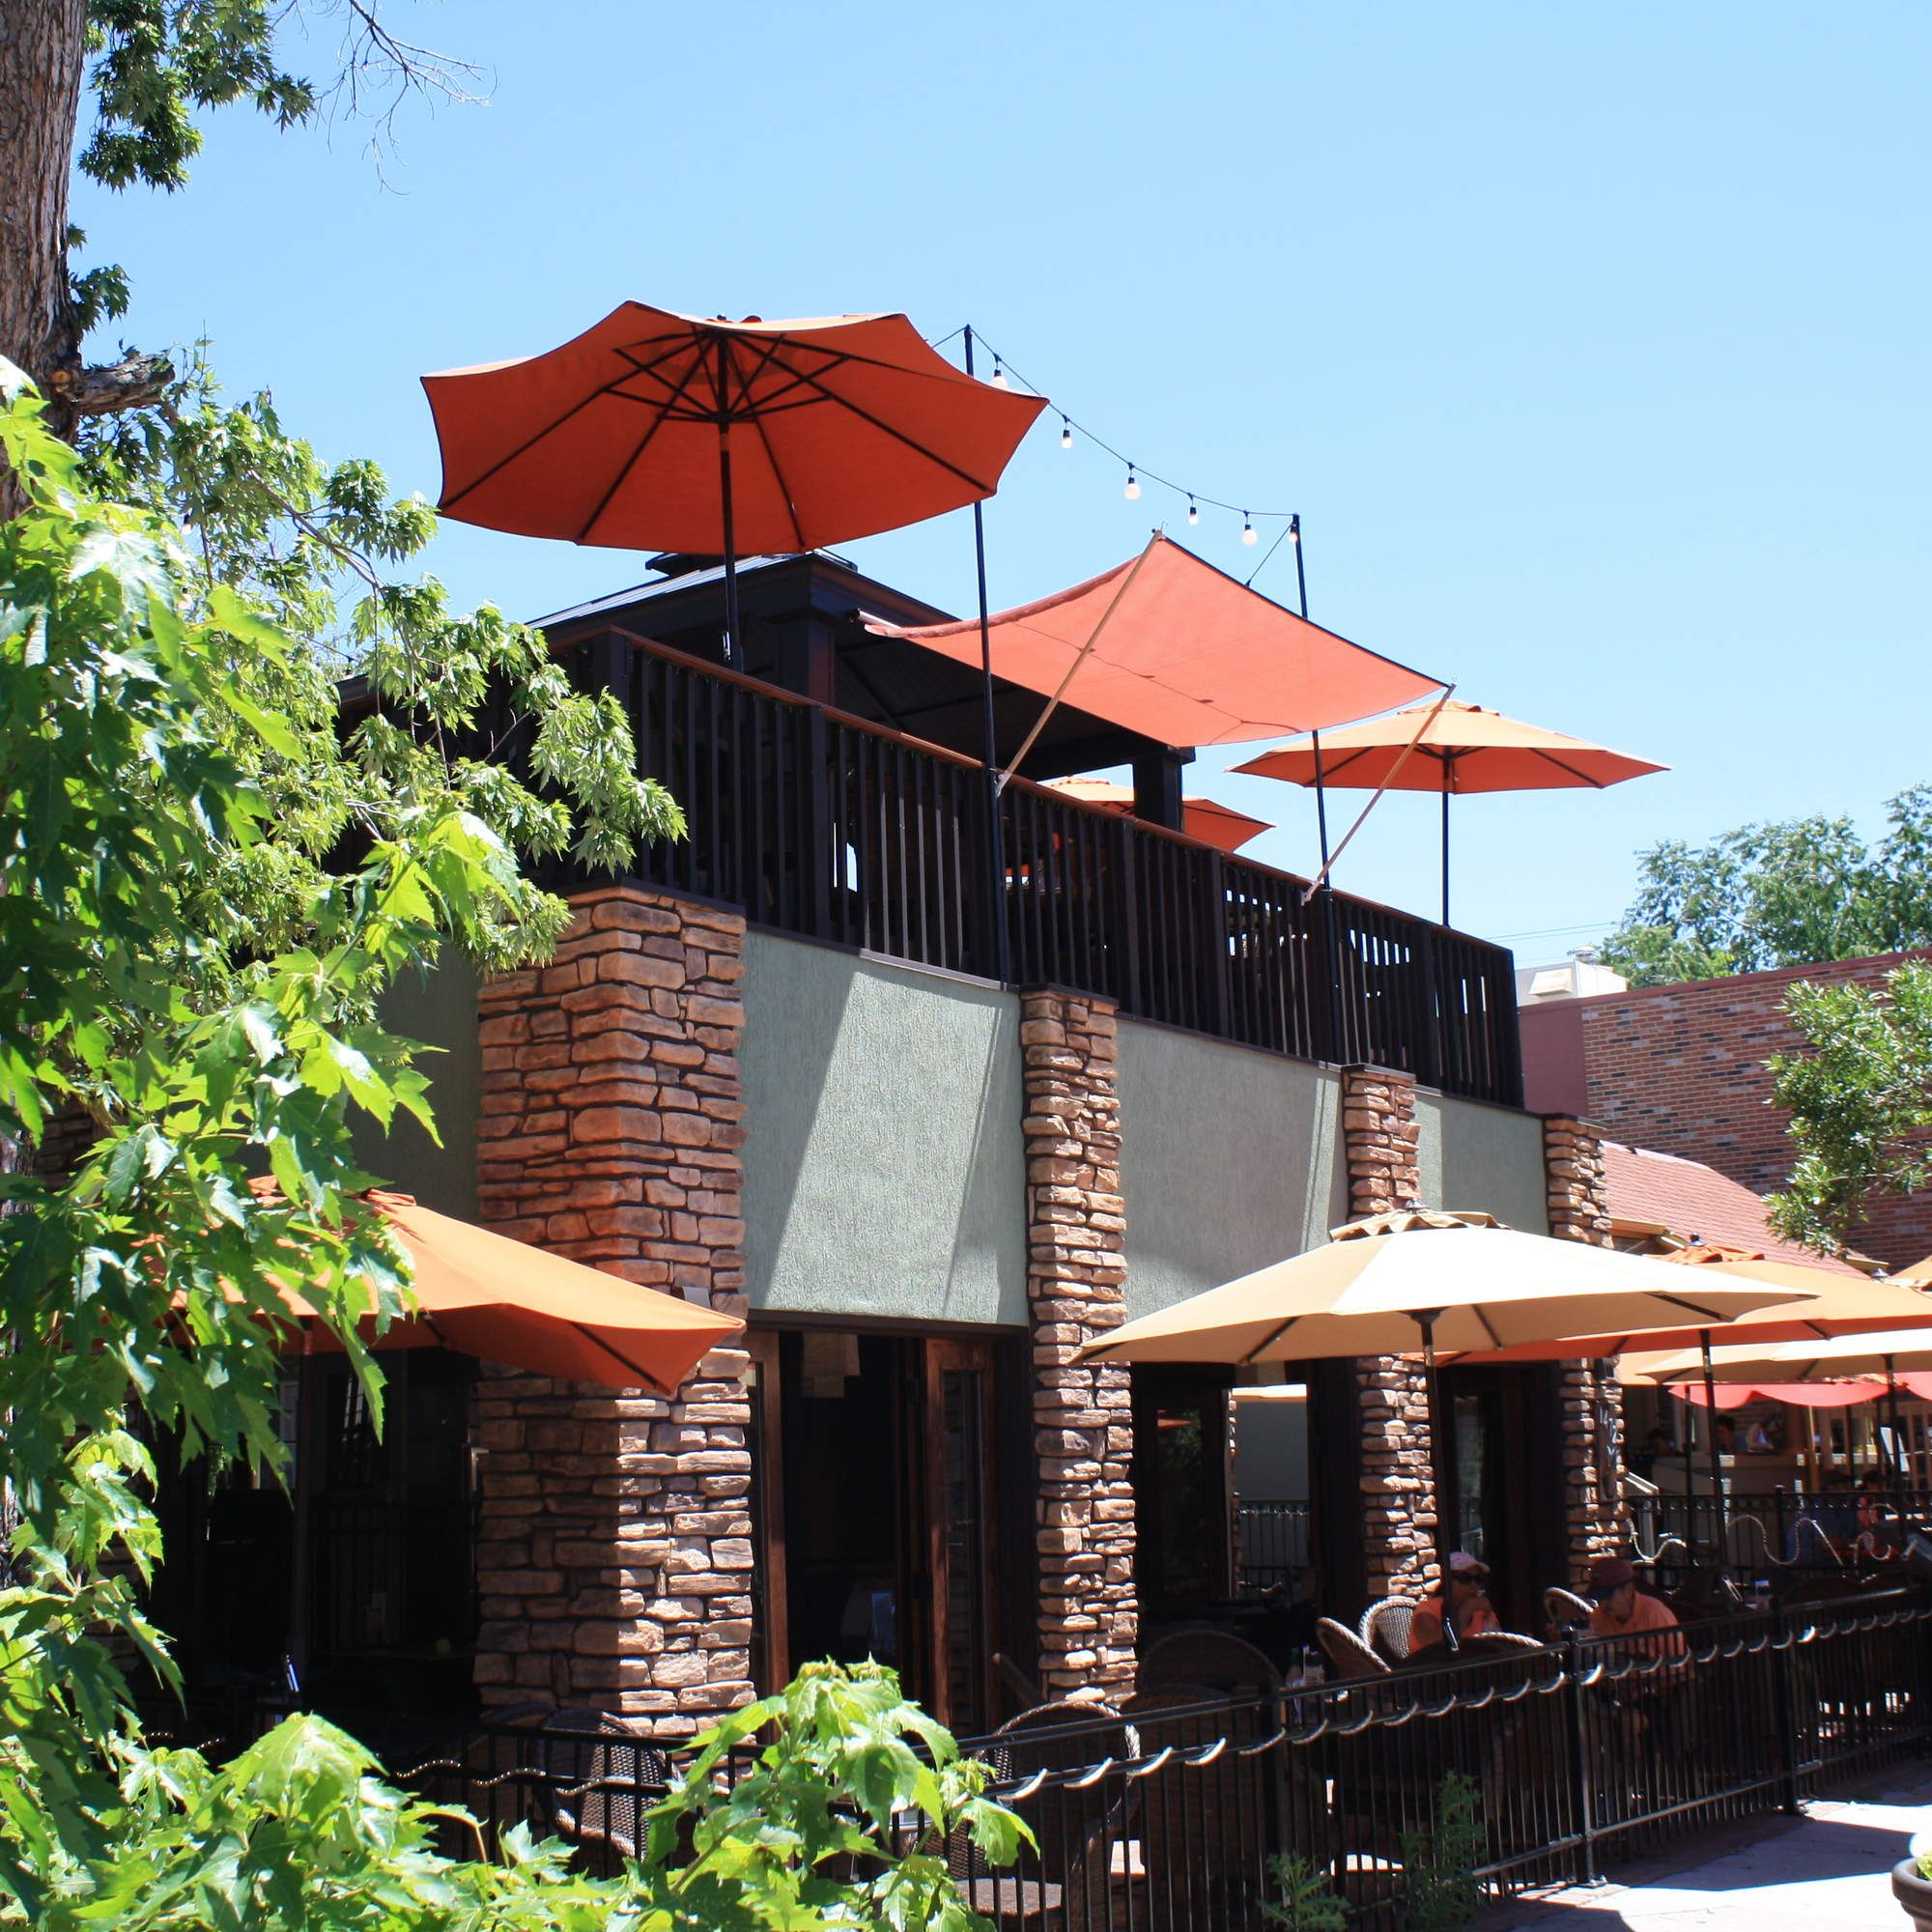 Fourteen Seventy Two In Denver, The Best Patios In 11 Denver U0027hoods